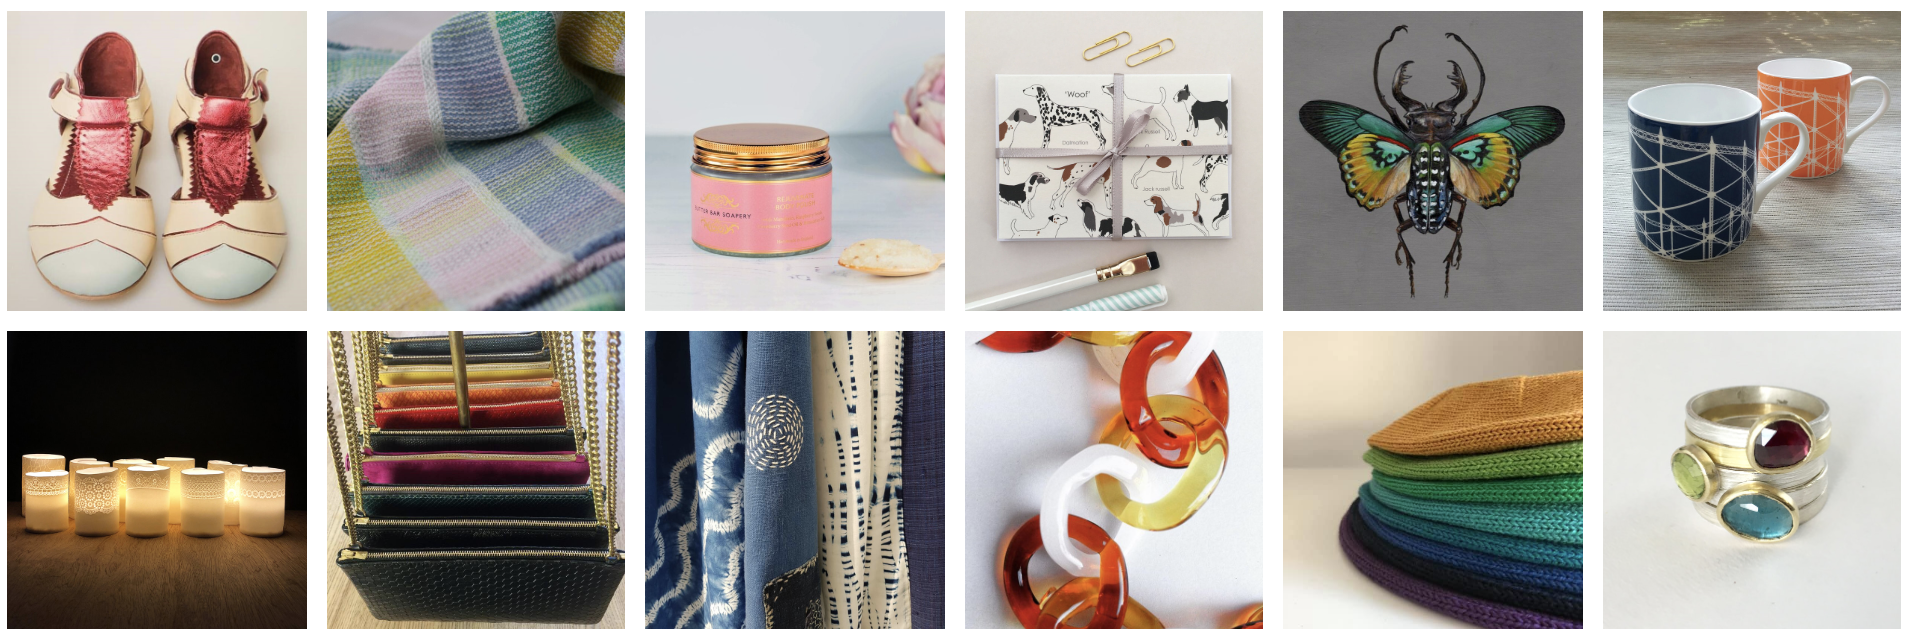 Muswell Hill Creatives:   Yaya Lala Kids ; By Cecil;  Butter Bar Soapery ;  Nina Nou ;  Jess Albert ;  Jo Angell ;  Luminous Muse Ceramics ;  Rachel Orme ;  Romor Designs;   Samantha Sweet ;  Lord and Taft  and  Wyckoff Smith Jewellery .